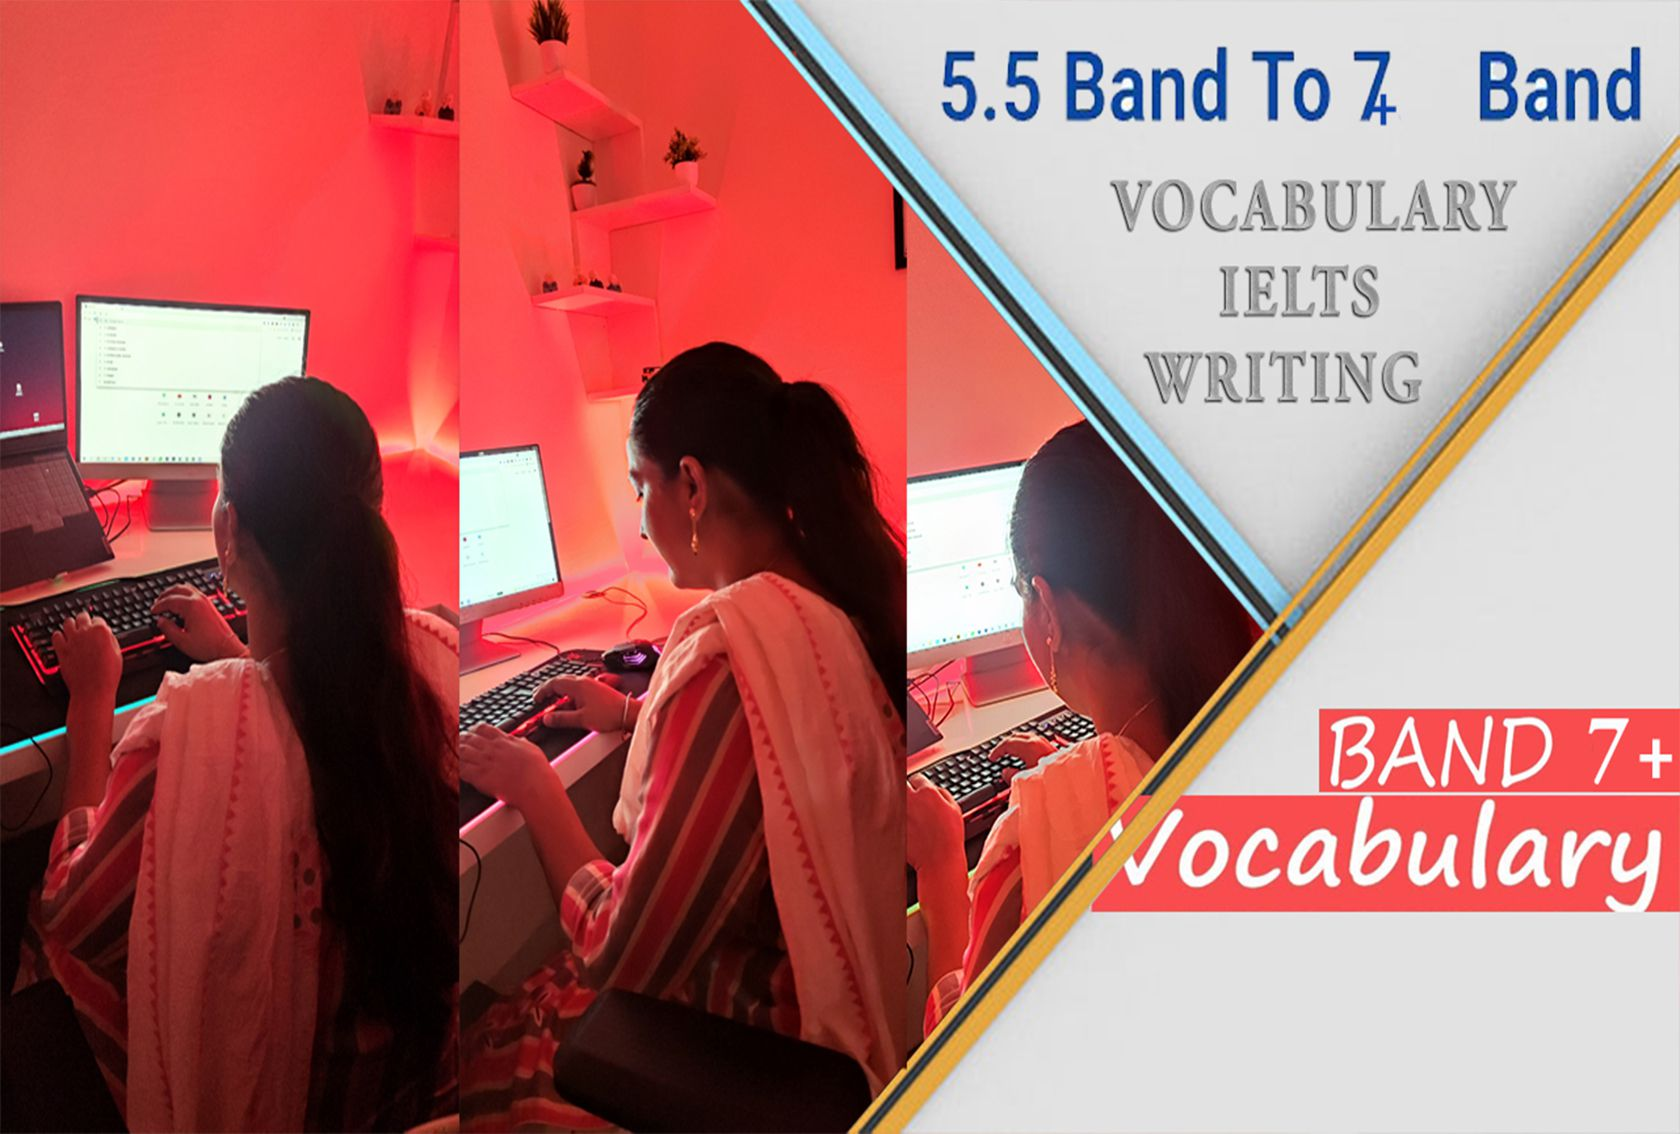 IELTS writing vocabulary for 7.5 band | IELTS Vocabulary Band 7.5